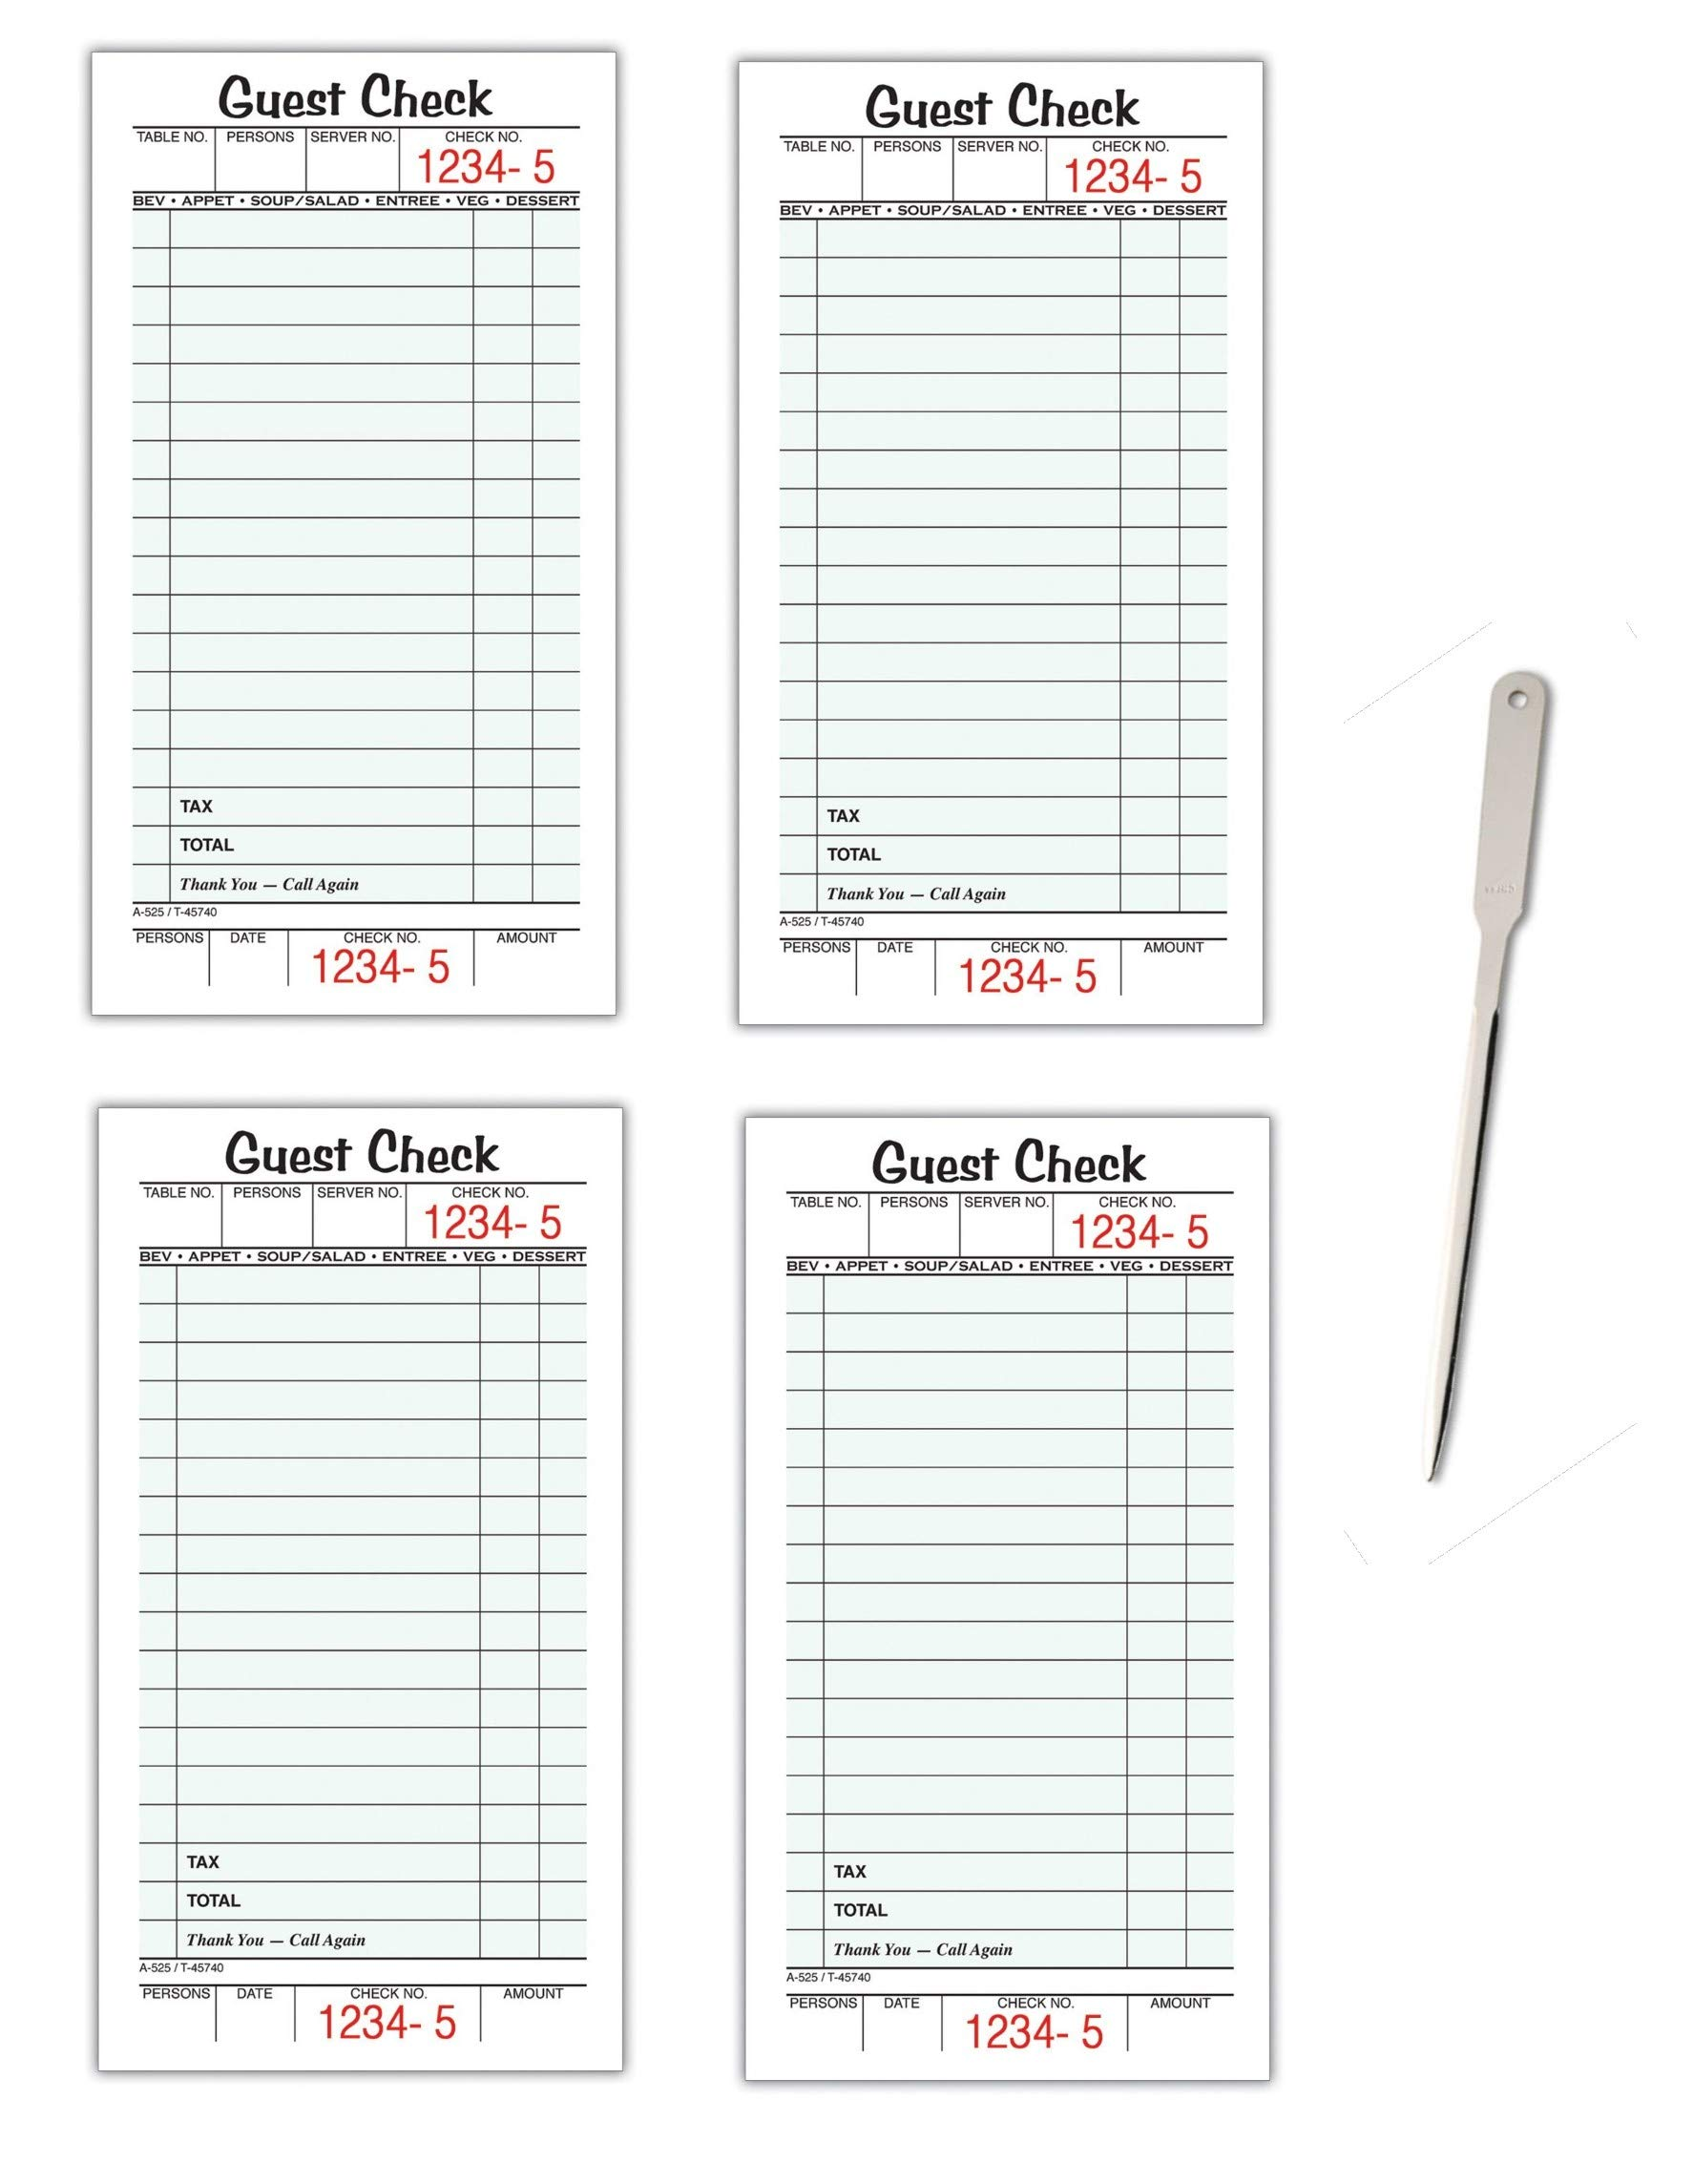 Adams Guest Check Pads, Single Part, Perforated Guest Receipt, 3-2/5'' x 6-1/4'', 50 Sheets per Pad, 40 Pack (525SW) - Bundle Includes Universal Letter Opener